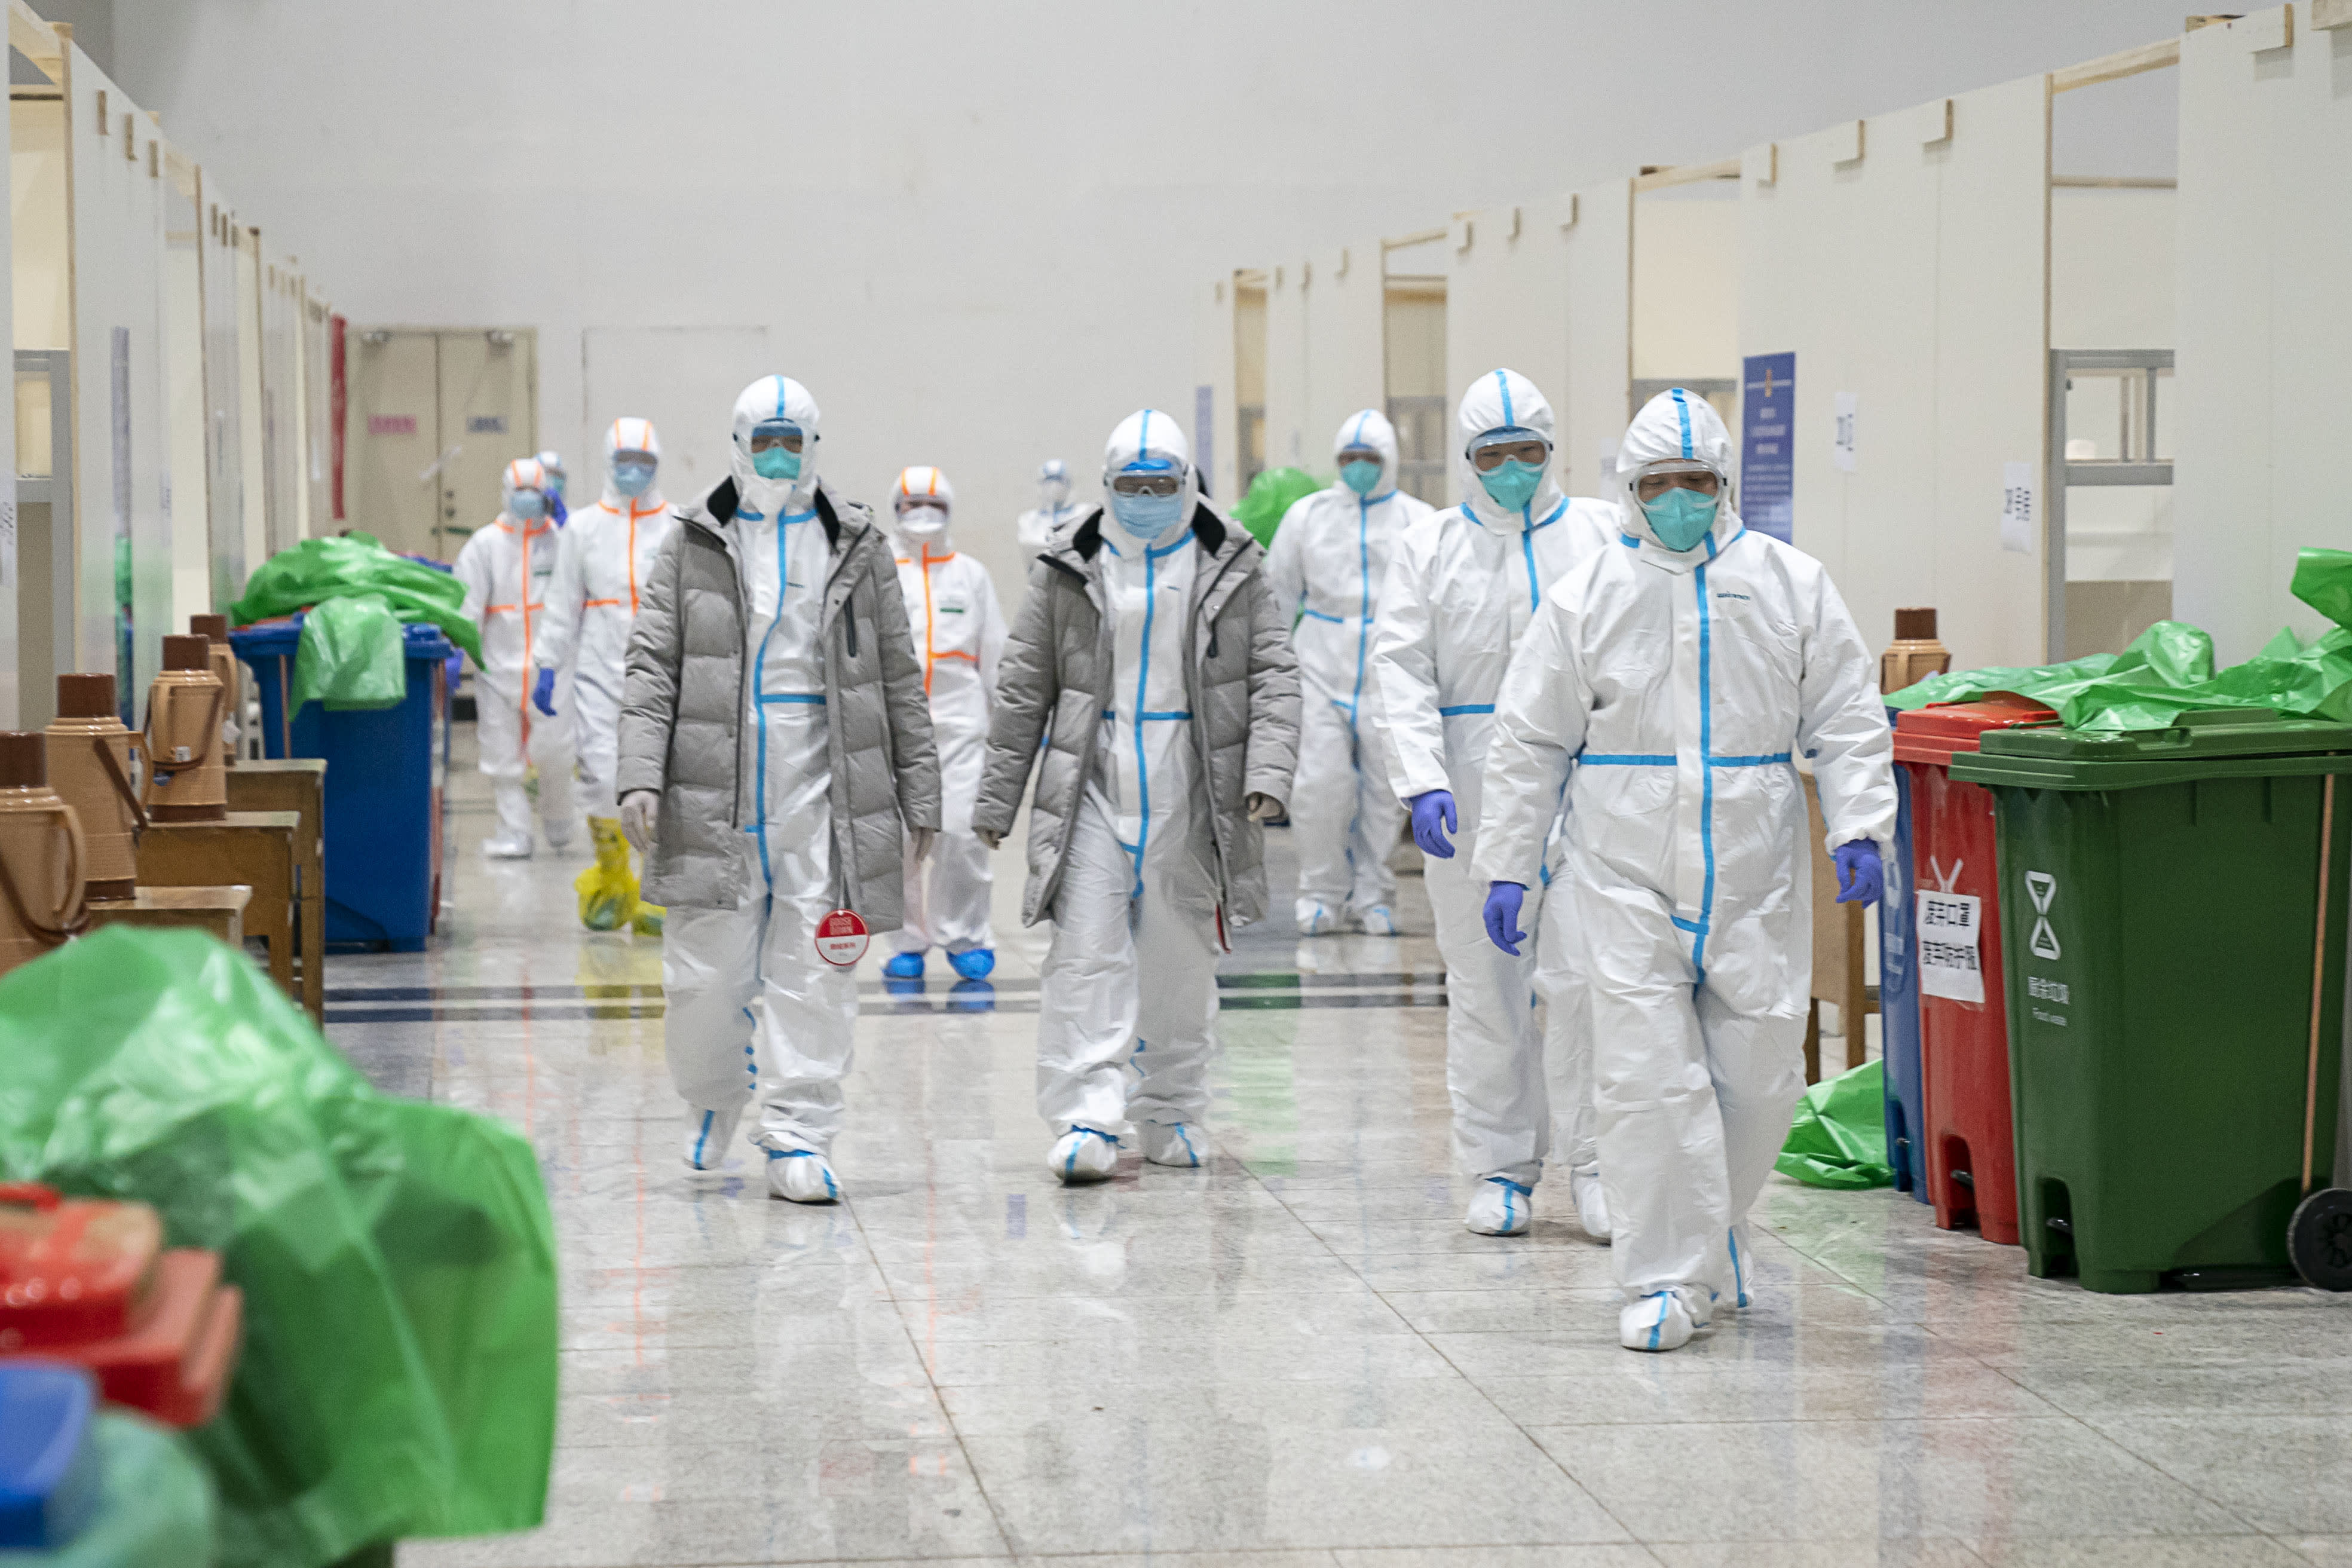 Coronavirus live updates: China sends team to Wuhan after outcry ...